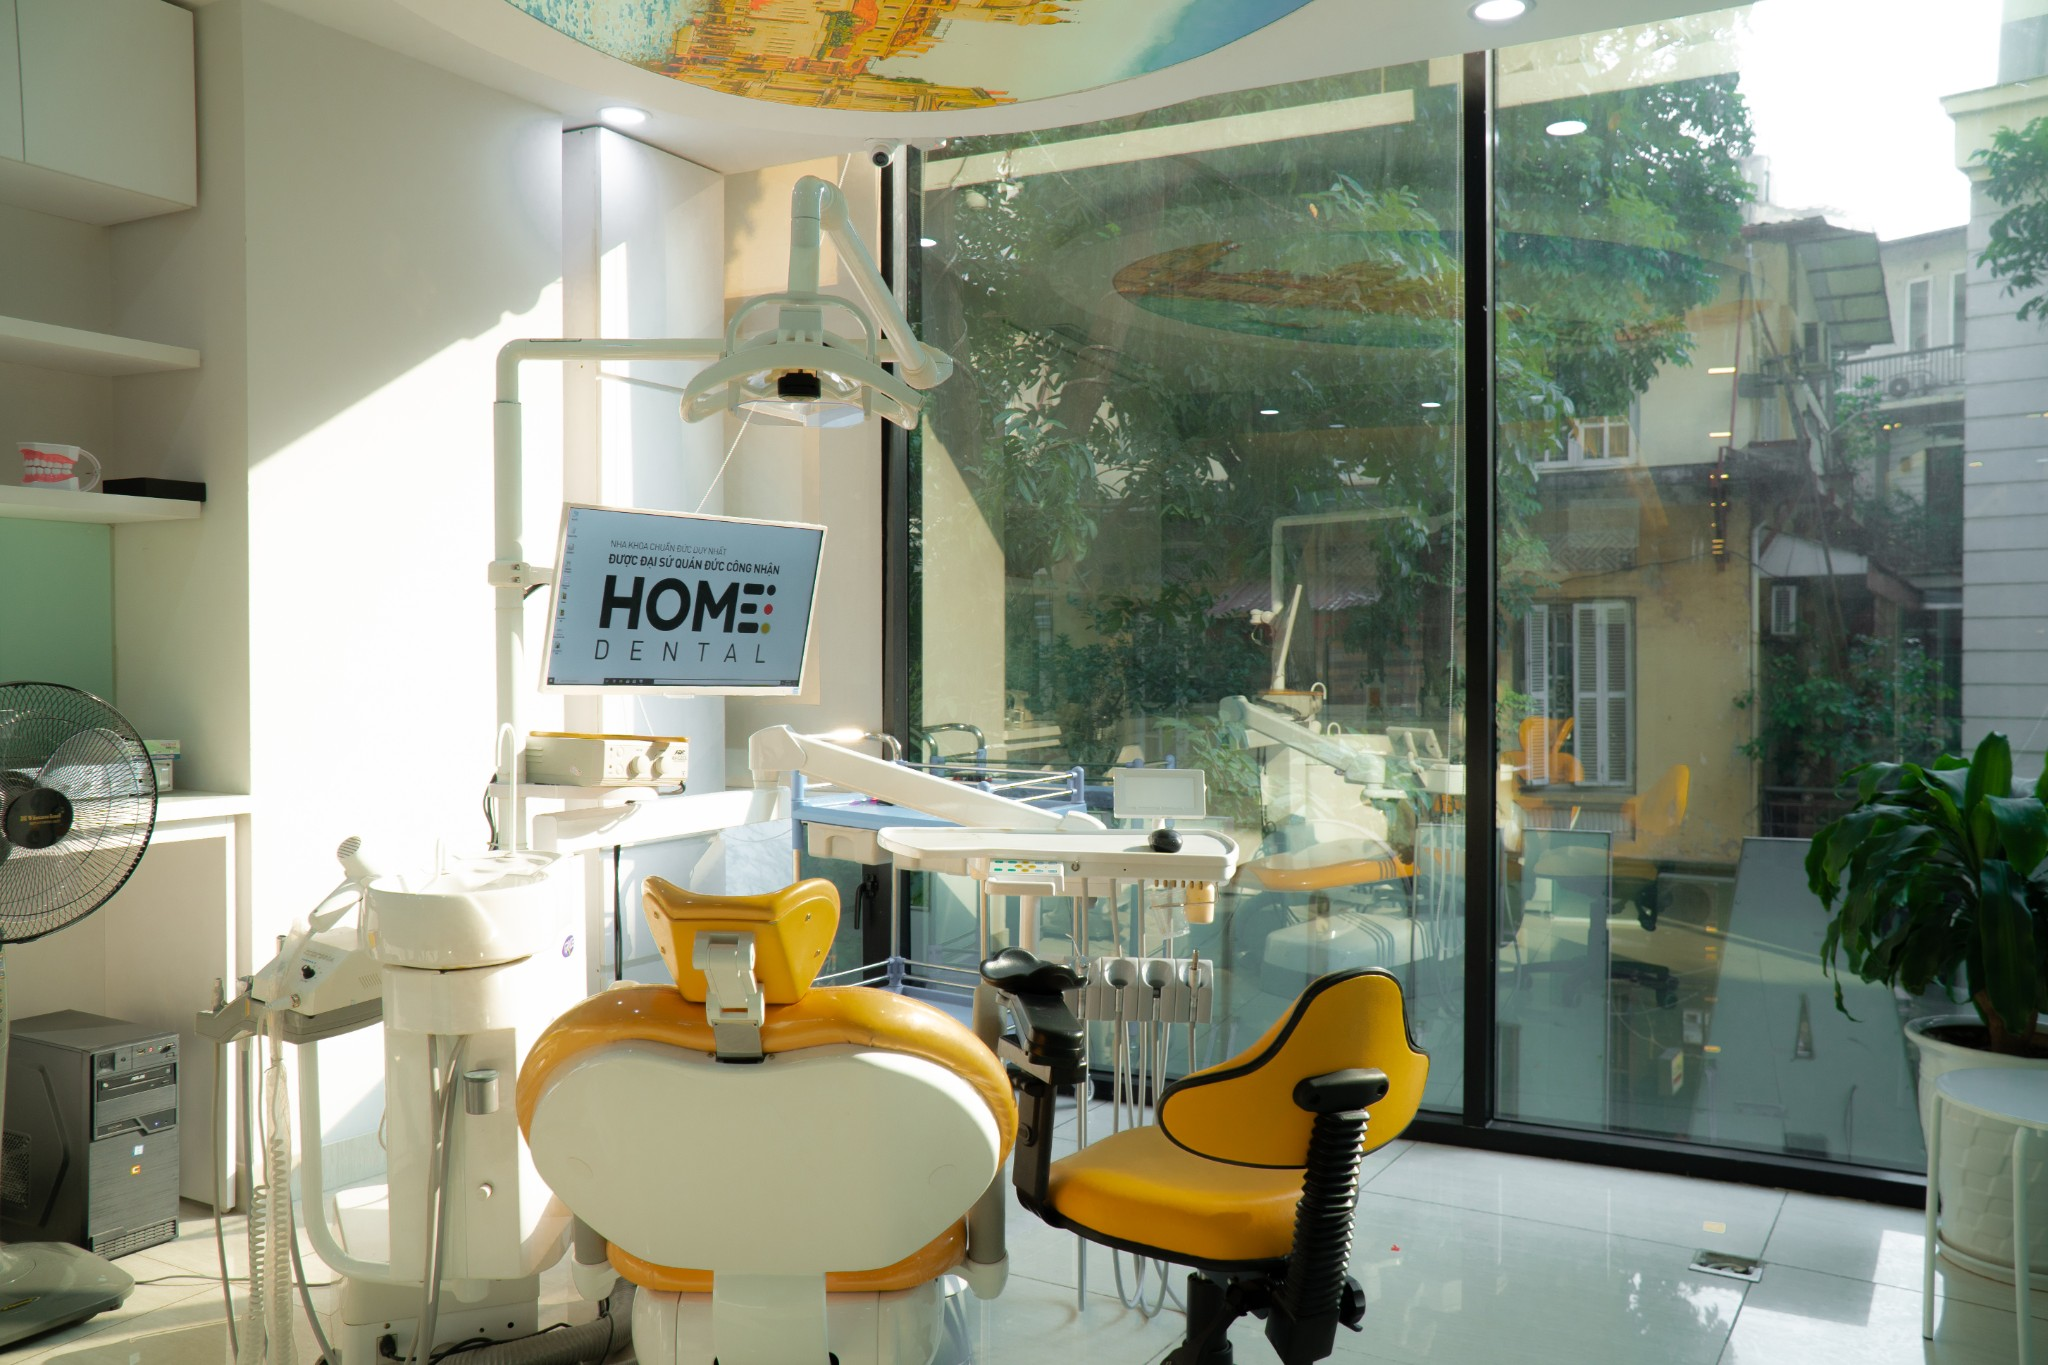 HOME DENTAL CLINIC